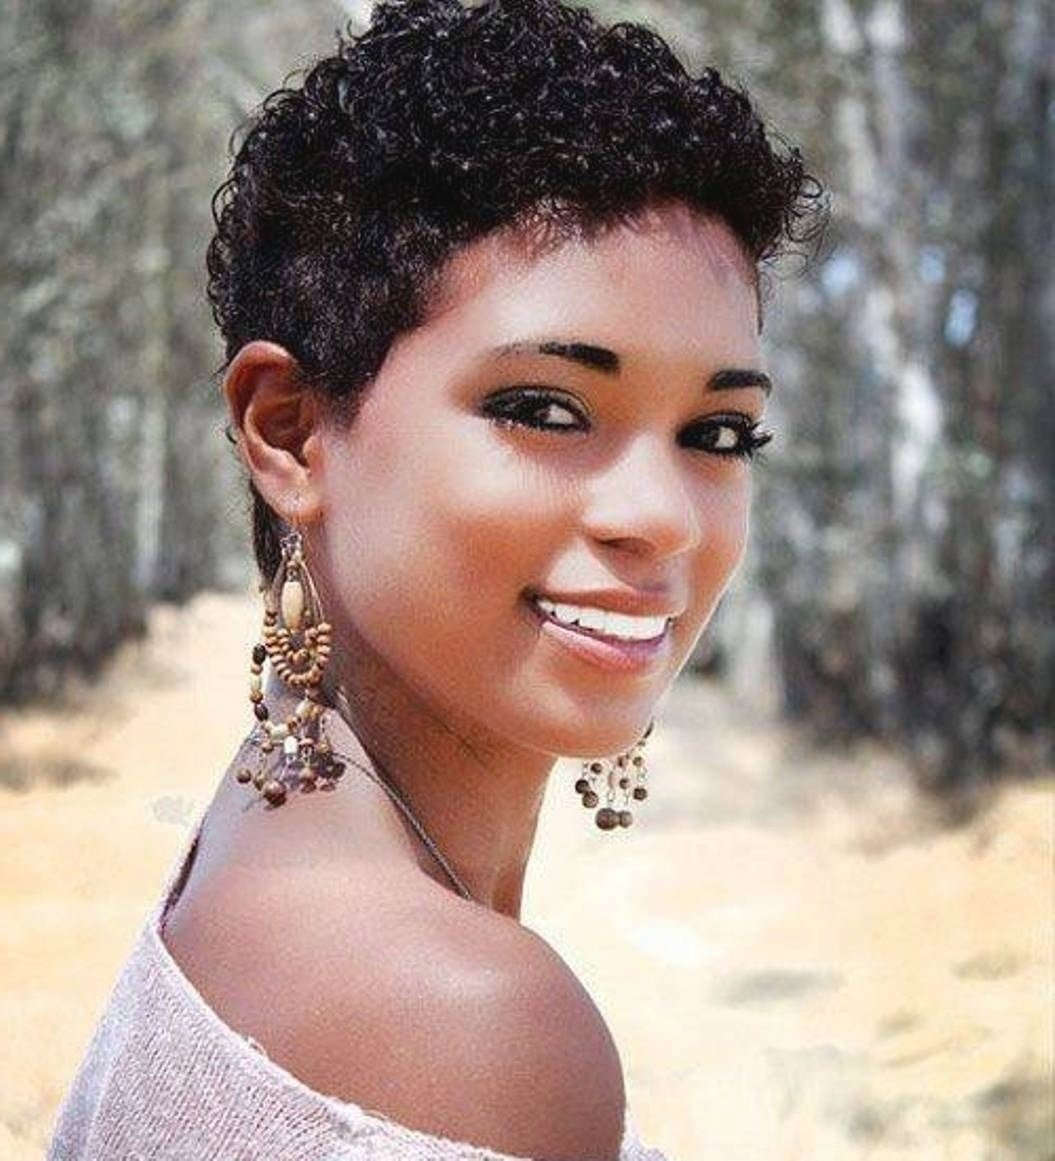 The Best Short Curly Ethnic Hairstyles Fade Haircut Pictures